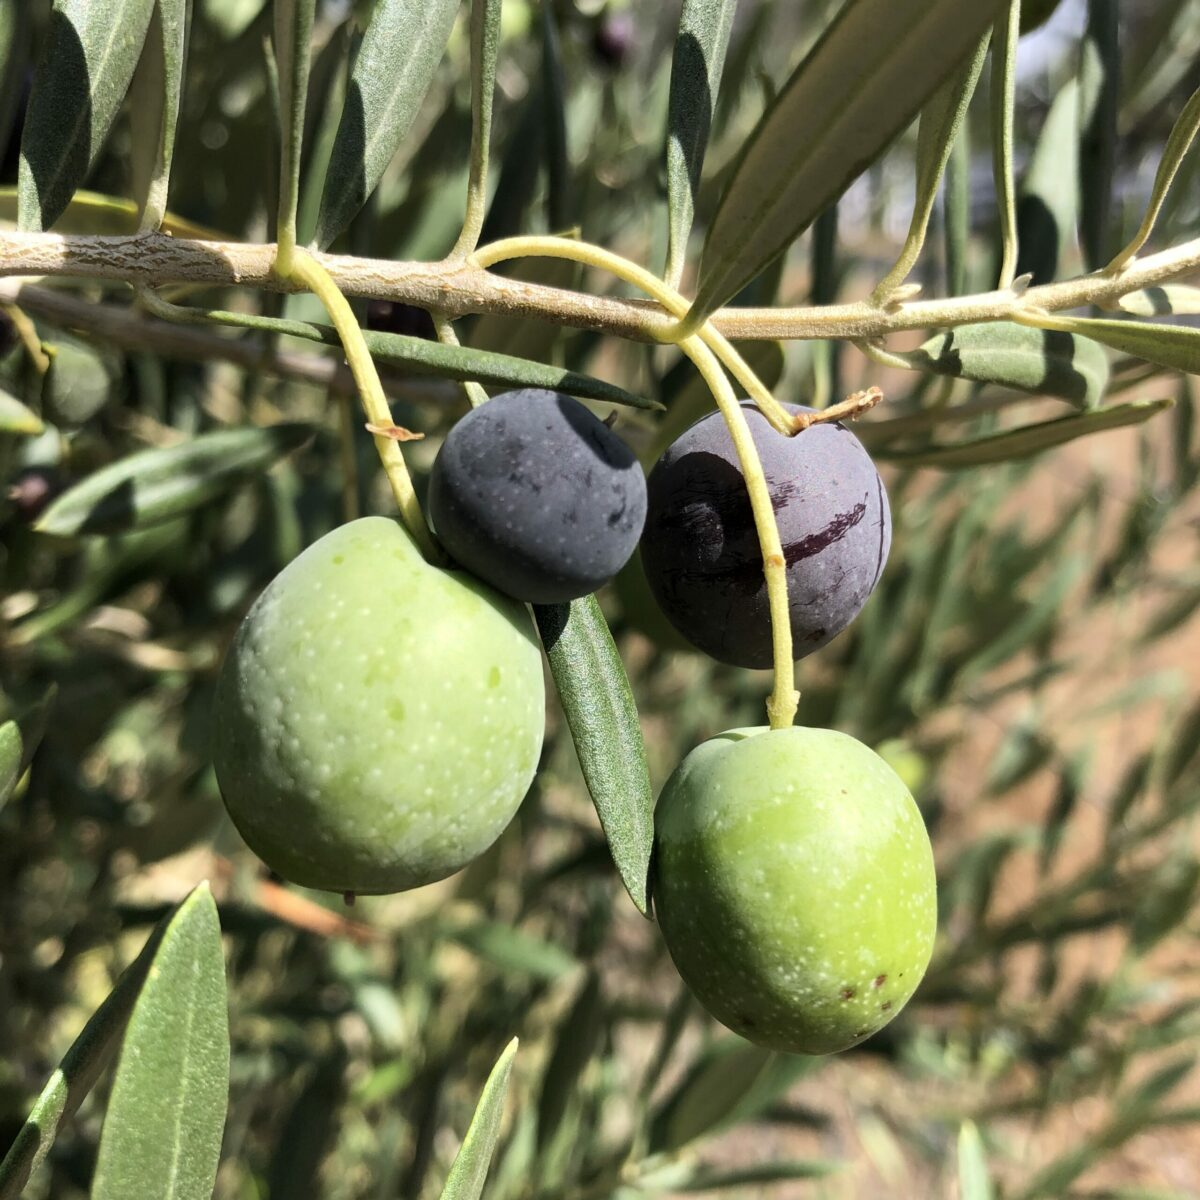 olives on tree branch